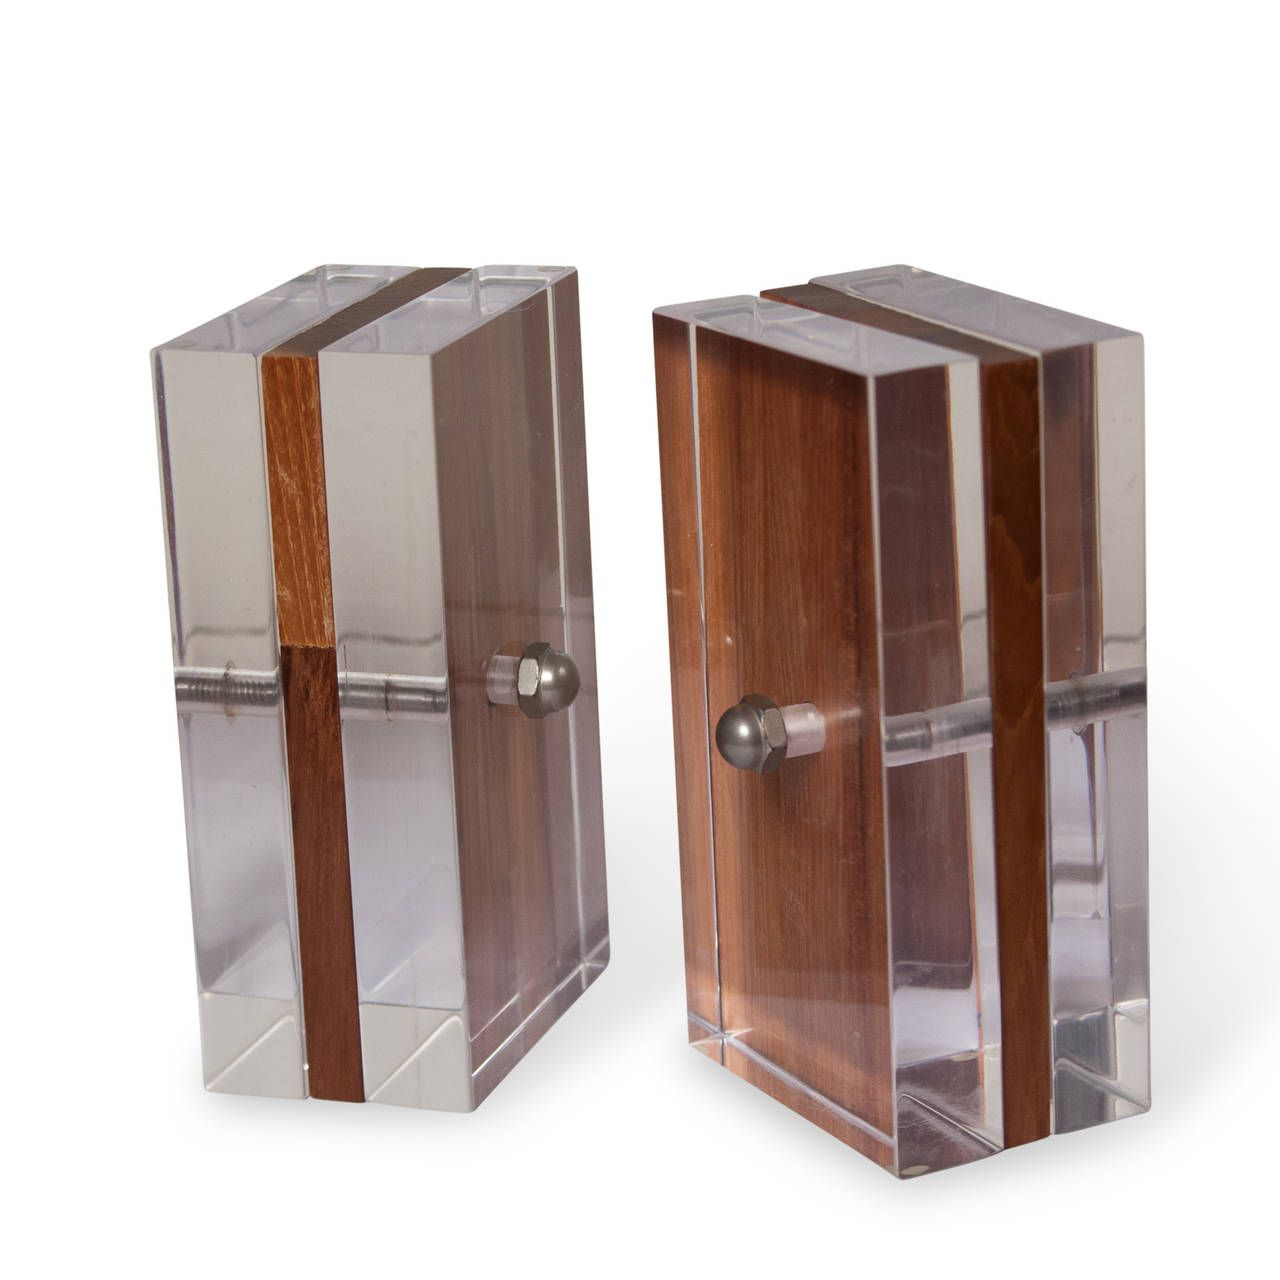 Lucite and Elm Bookends | From a unique collection of antique and modern bookends at https://www.1stdibs.com/furniture/more-furniture-collectibles/bookends/